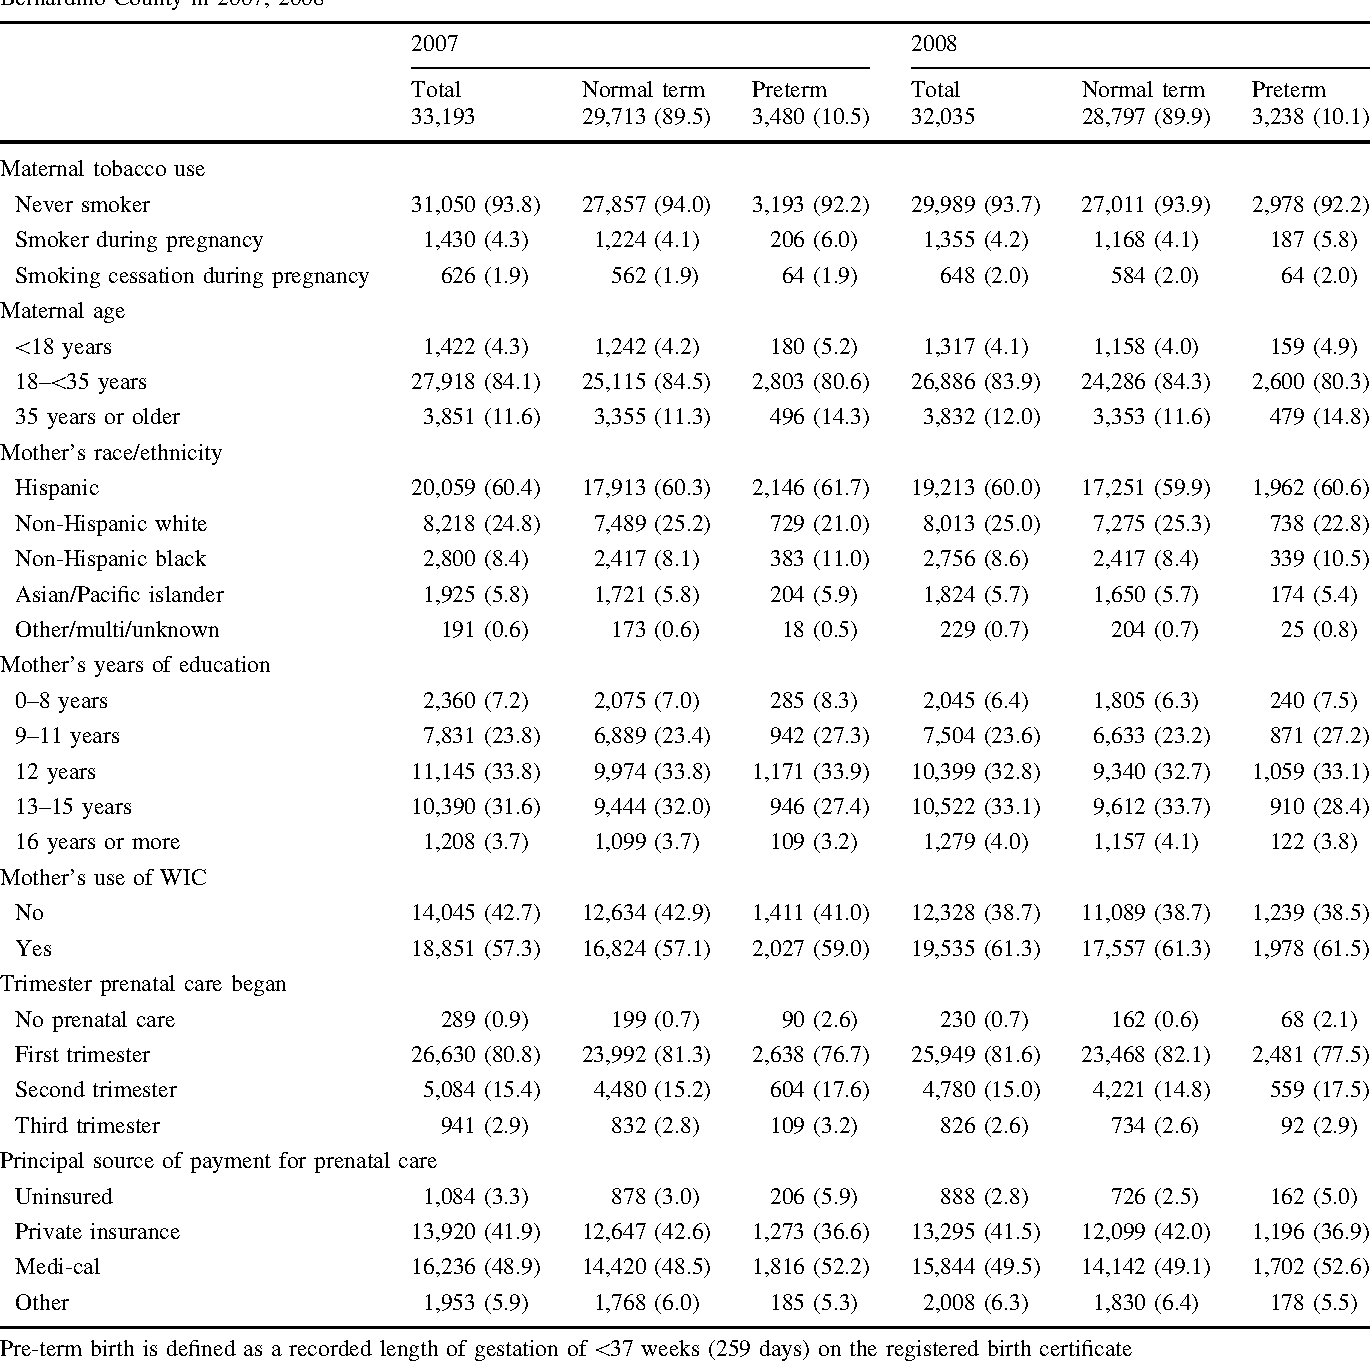 Estimating The Impact Of Smoking Cessation During Pregnancy The San